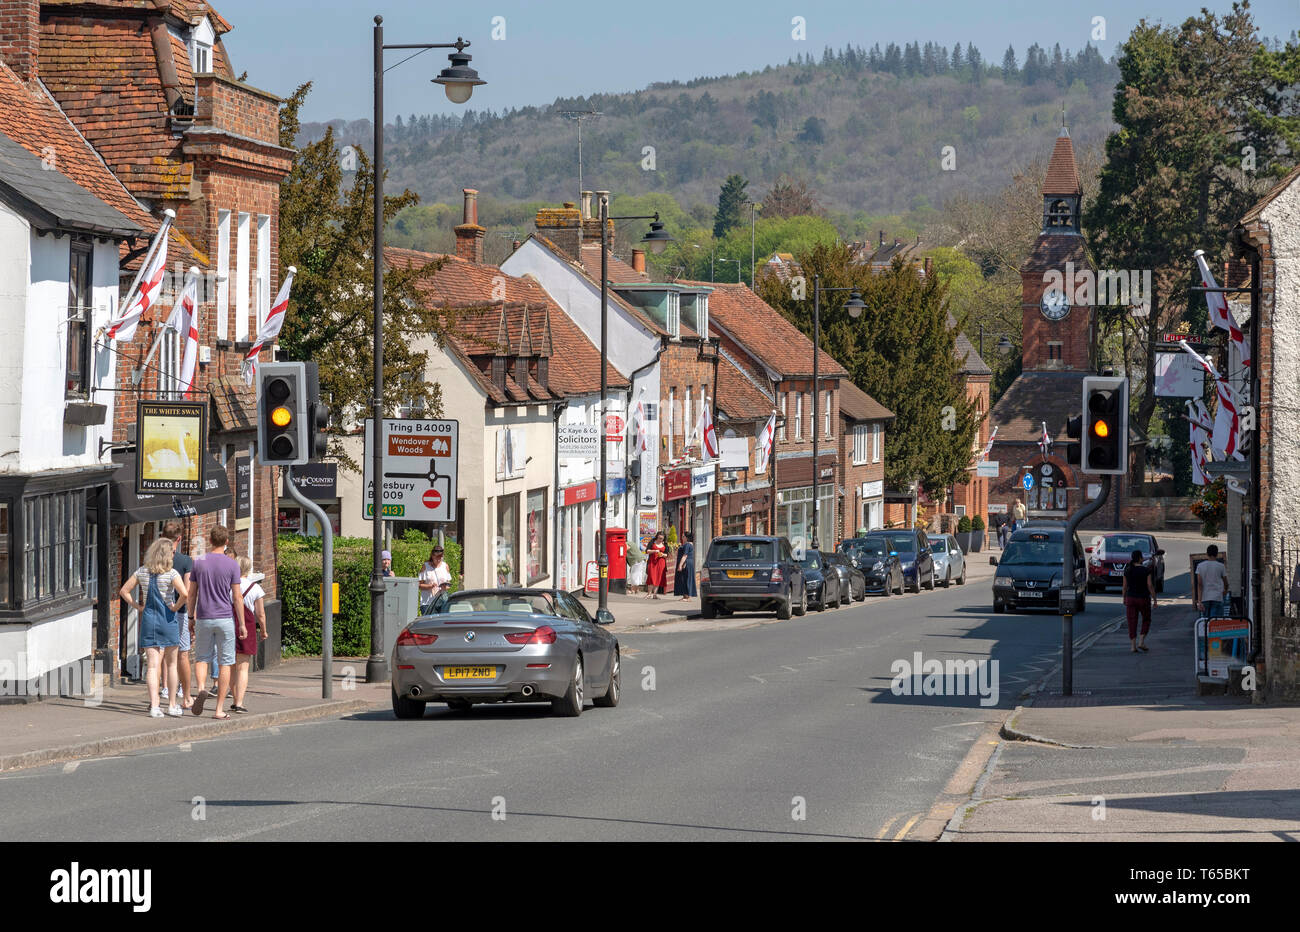 Wendover, Buckinghamshire, England, UK. April 2019. High Street, Wendover in The Chiltern Hills area. A market town with Clock Tower dating from 1842. - Stock Image